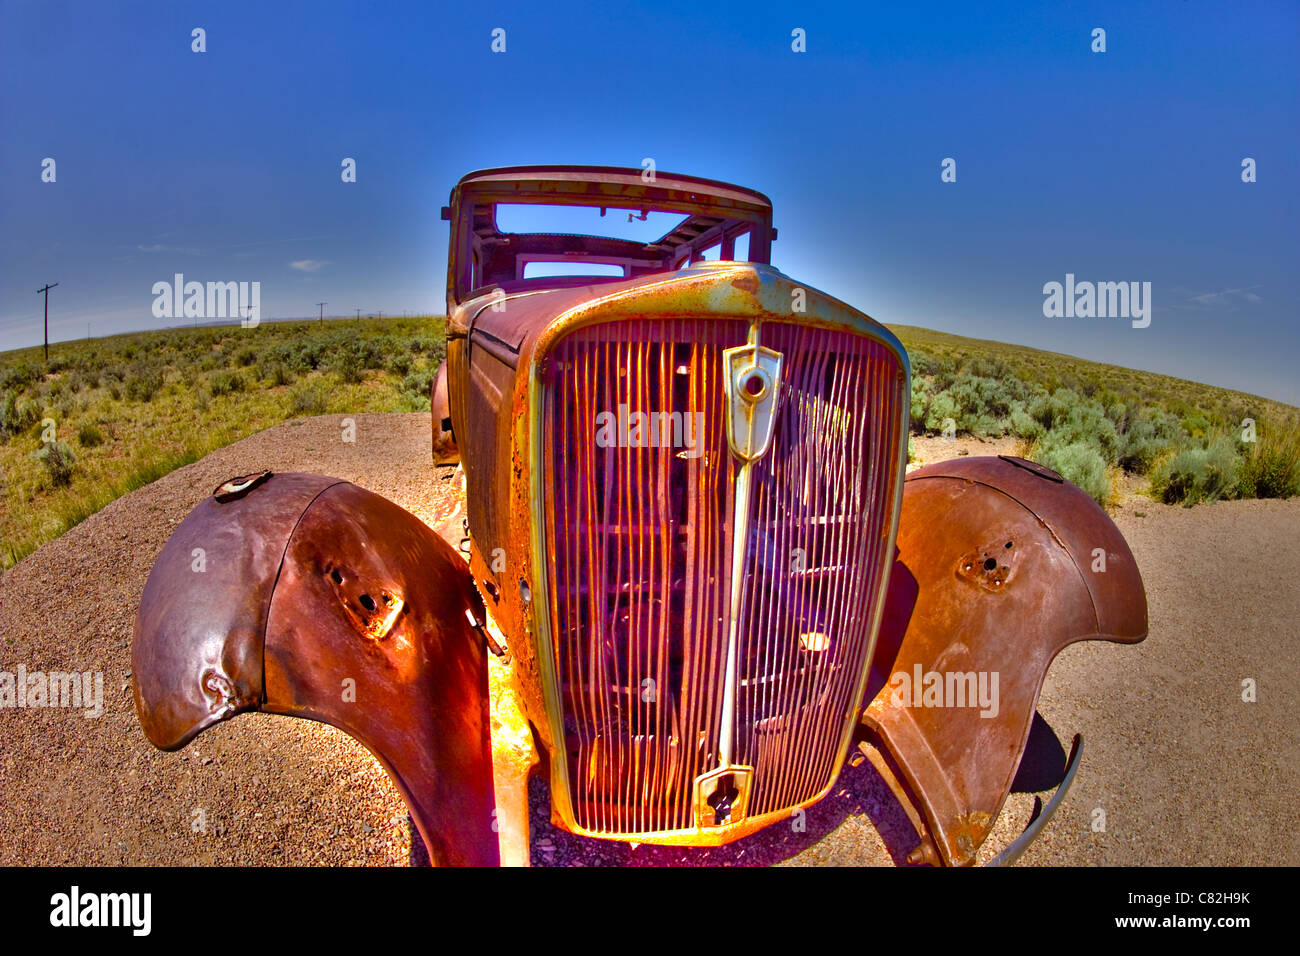 A 1932 Studebaker, servers as a monument to  those  who drove to California to escape the dust bowl of the 1930's - Stock Image